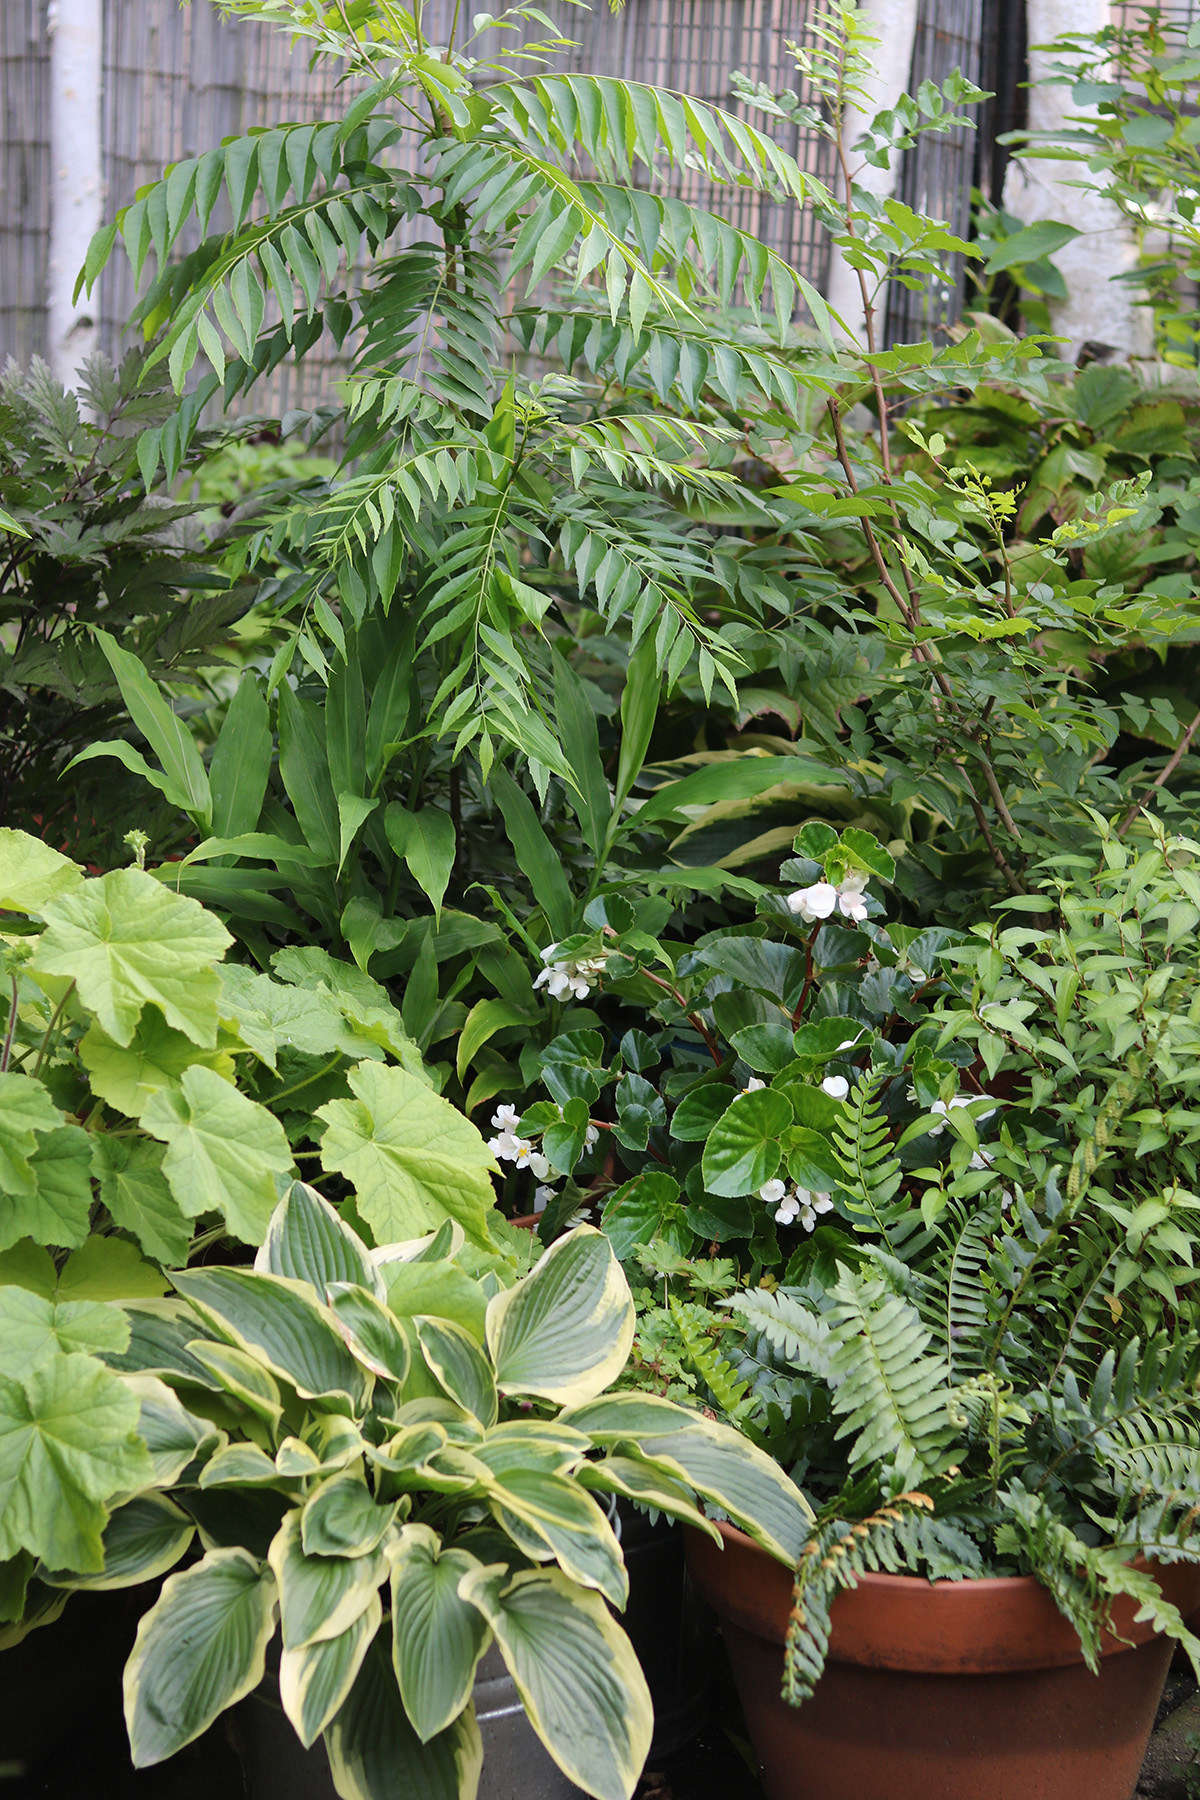 Sub tropical edibles share space with more familiar shade lovers like hostas, native ferns, heucheras and snakeroot, and begonias. The curry leaf tree (center, rear, with pinnately compound leaves) loves humid summers and puts out lush new growth after an indoor winter.